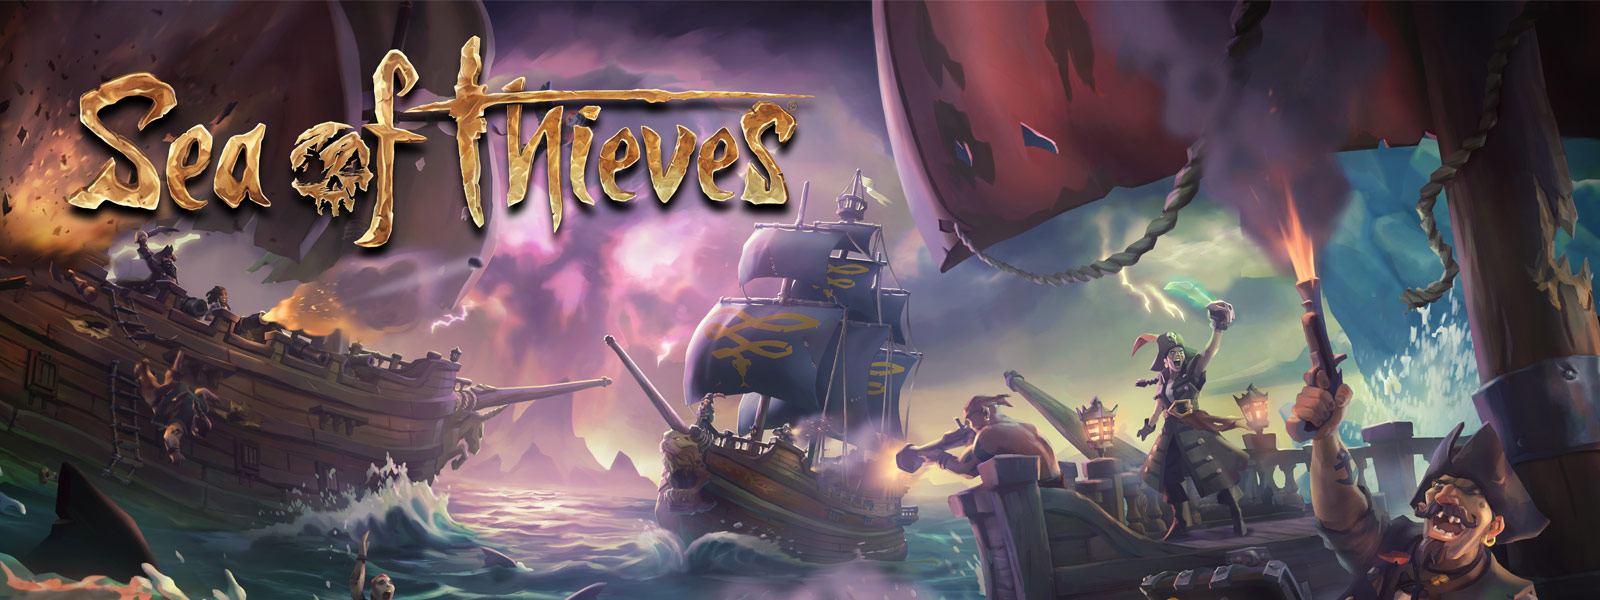 Sea of Thieves - Navios combatem em alto mar